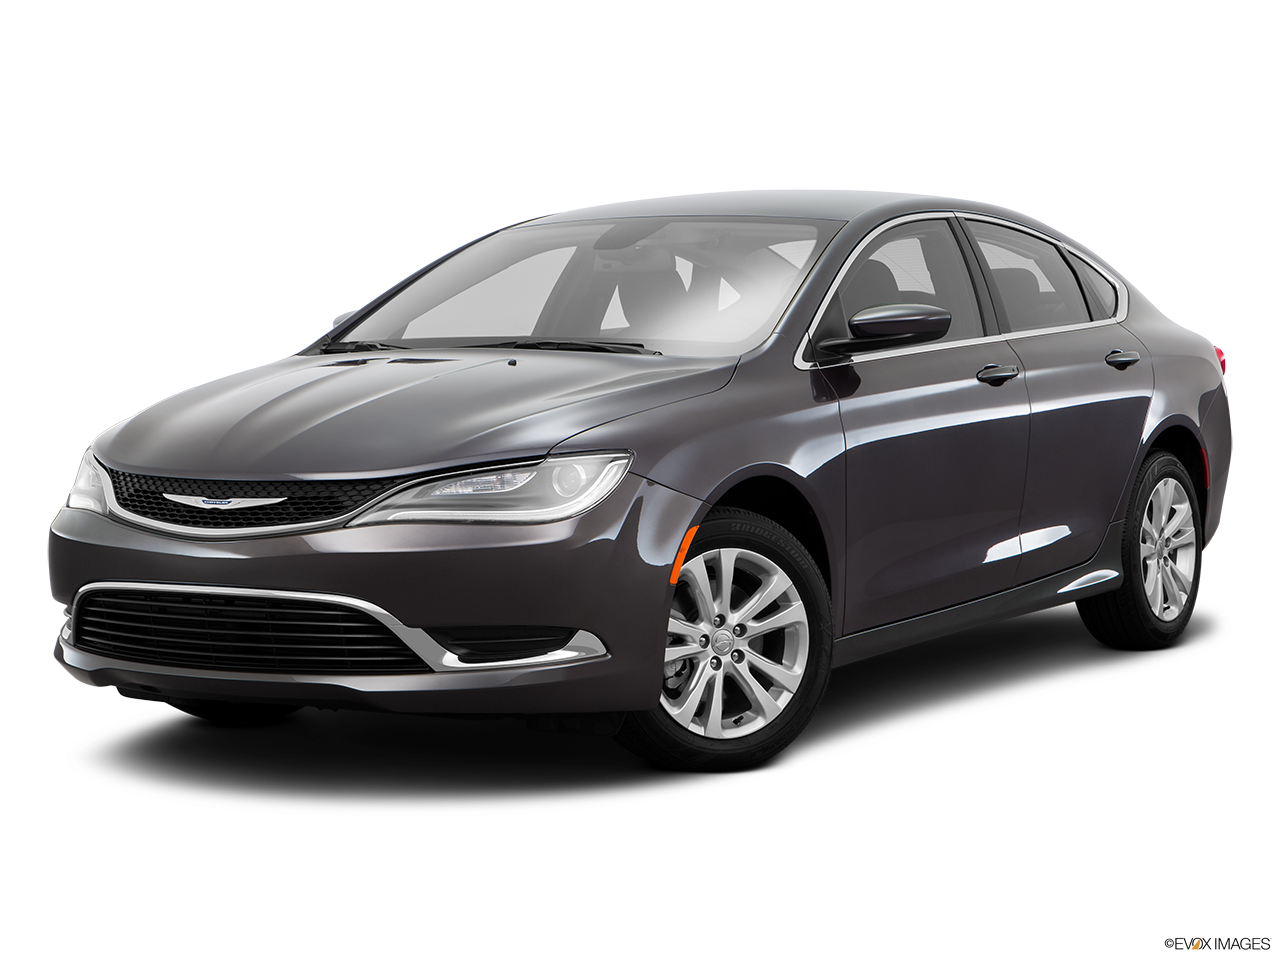 Test Drive A 2016 Chrysler 200 at Nashville Chrysler Dodge Jeep RAM in Antioch